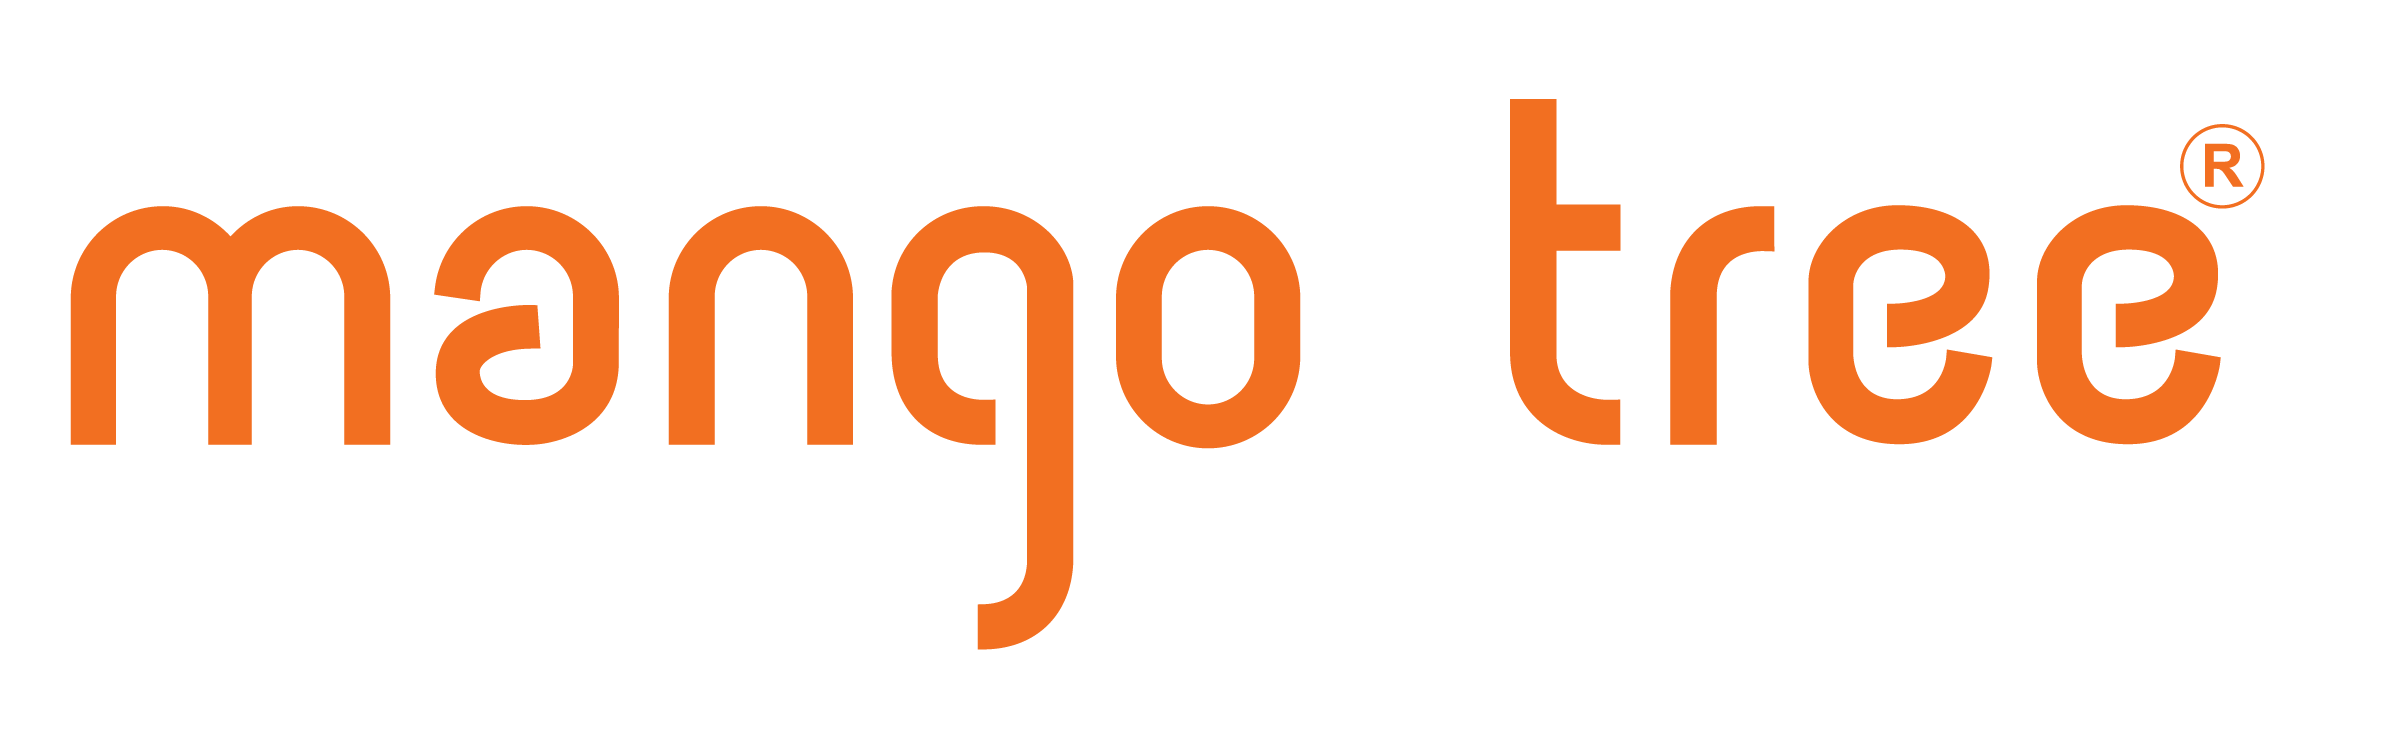 Mango-Tree-logo-USE-THIS-ONE.png